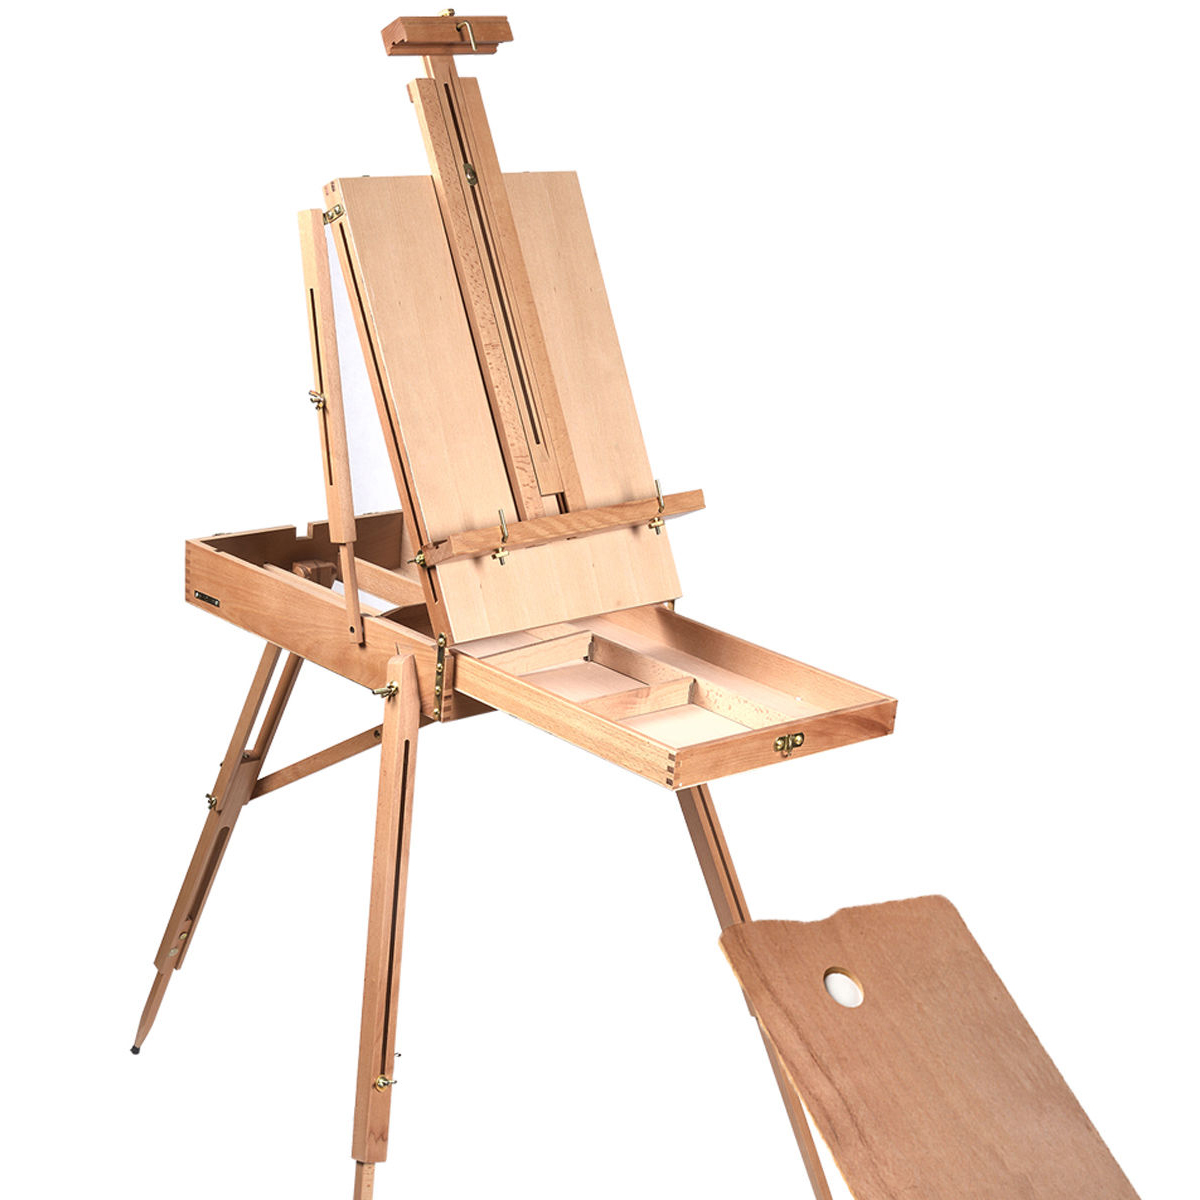 Portable Folding Durable Wooden Easel for Color Painting Sketch Box Artist Painters Tripod Painting Supplies Easels color for painters page 8